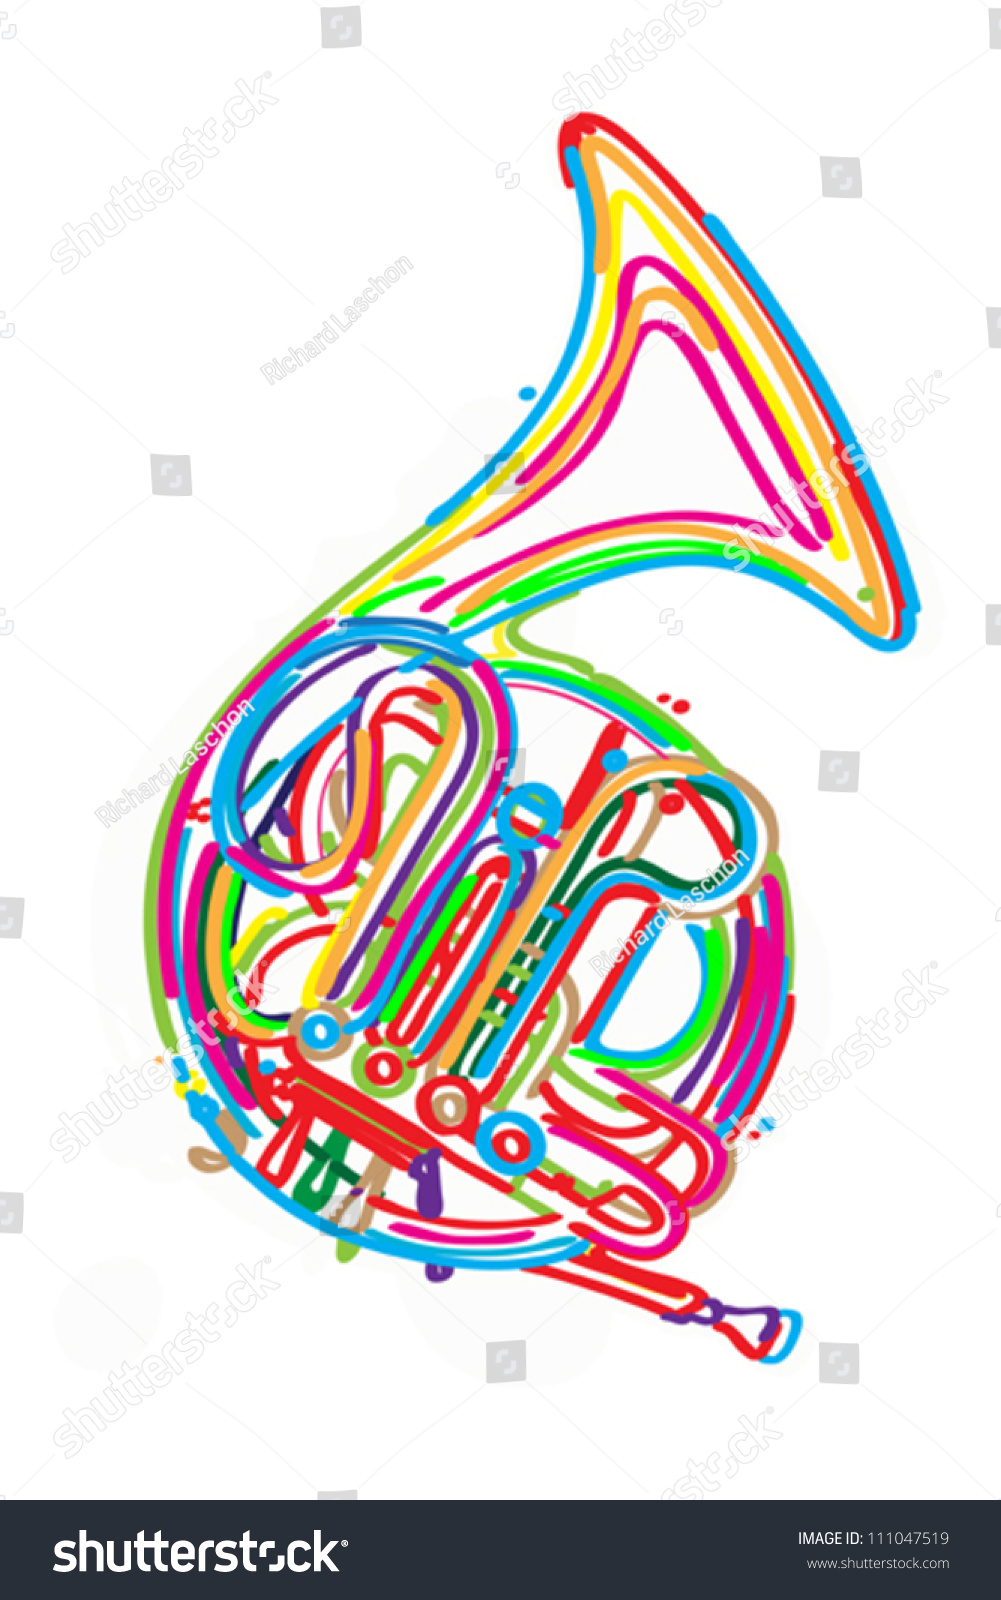 Stylized French Horn Against White Background Stock Vector ...